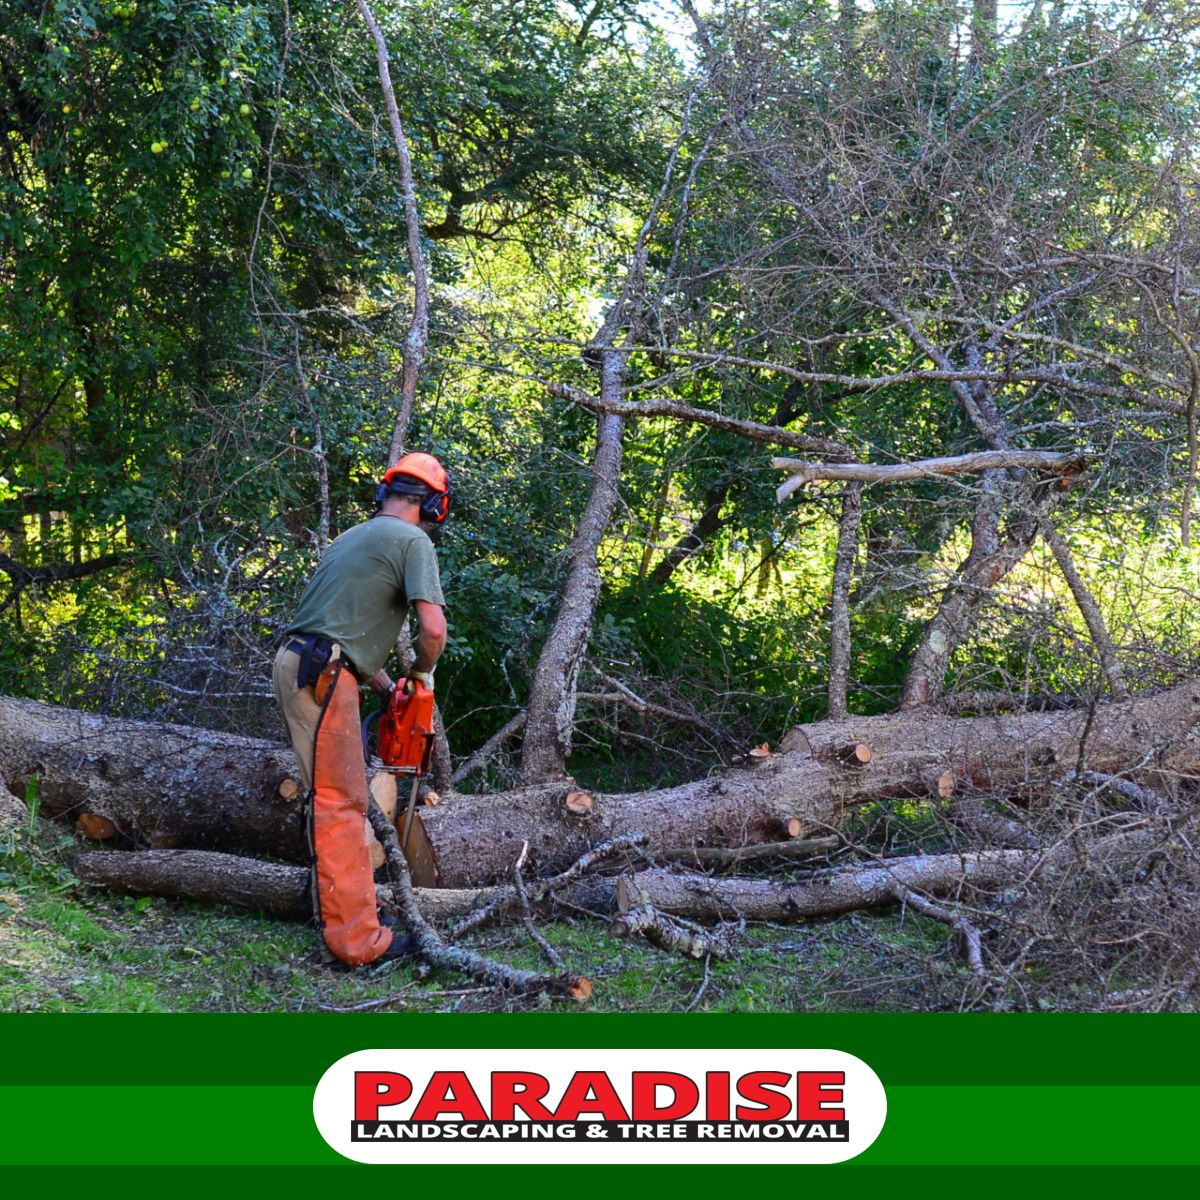 A tree removal company should be able to provide you with